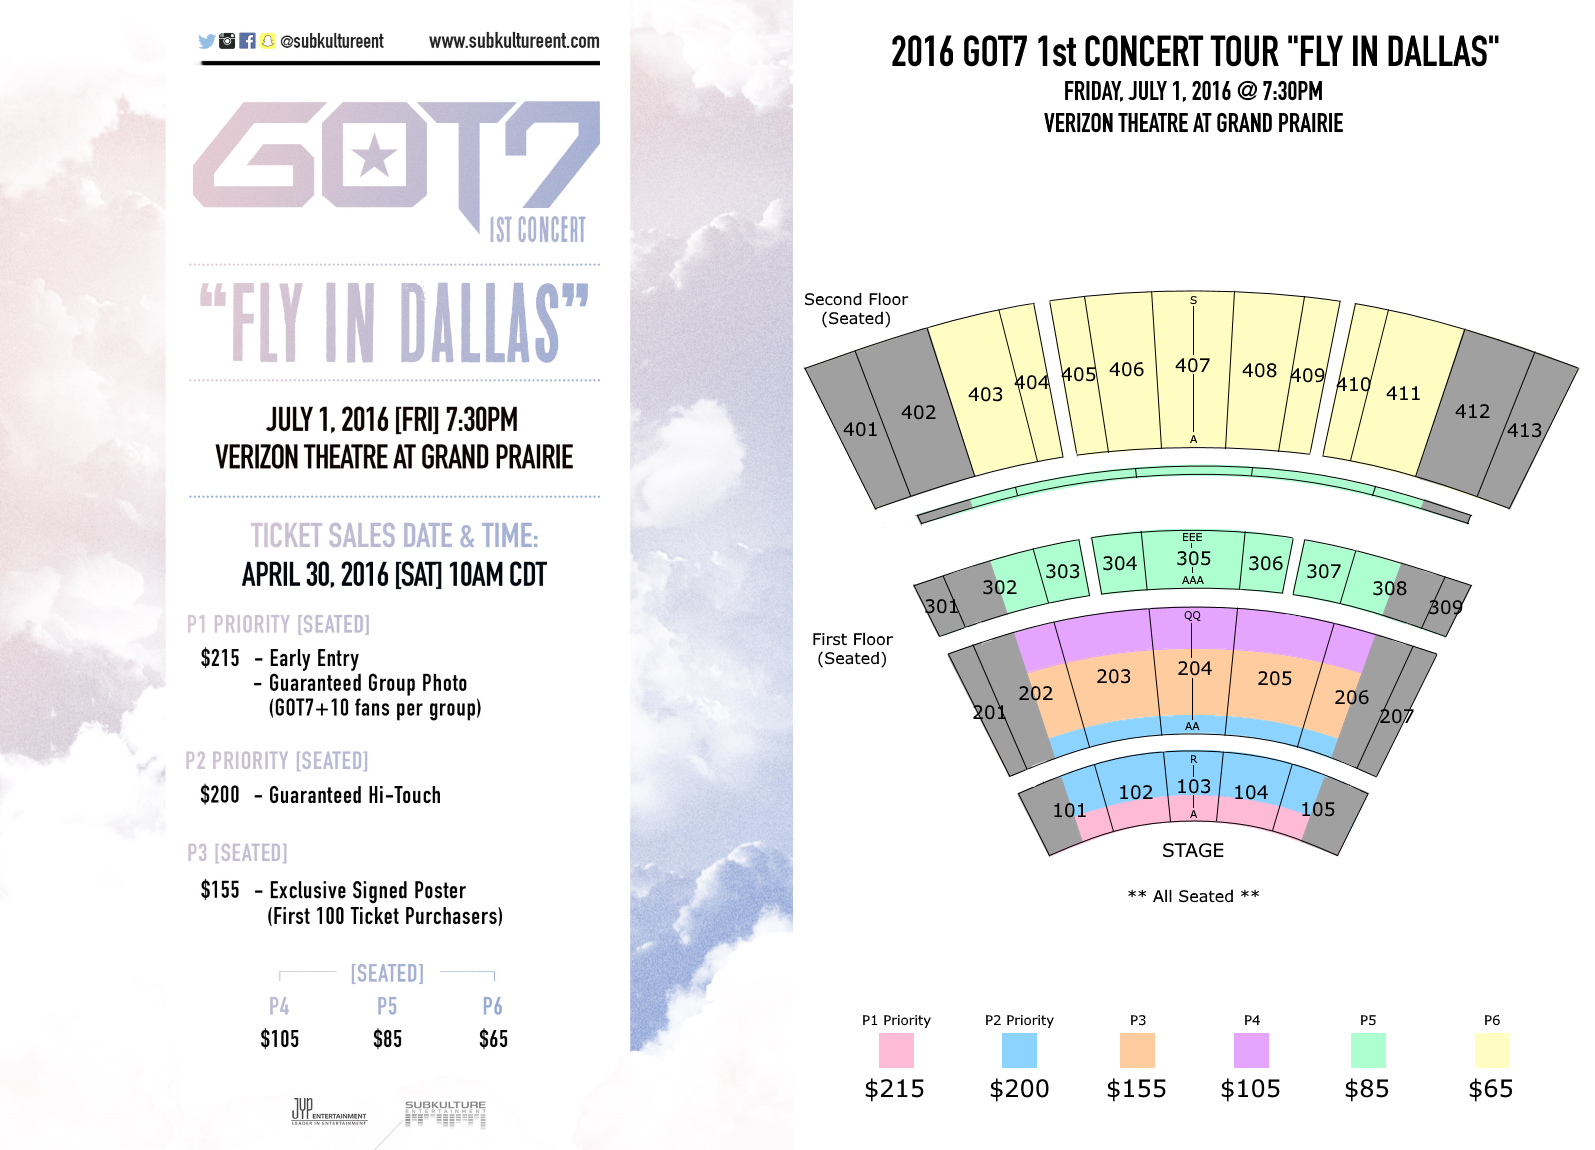 Ticket Prices And Seating Plans Announced For Got7 Fly In Usa Tour